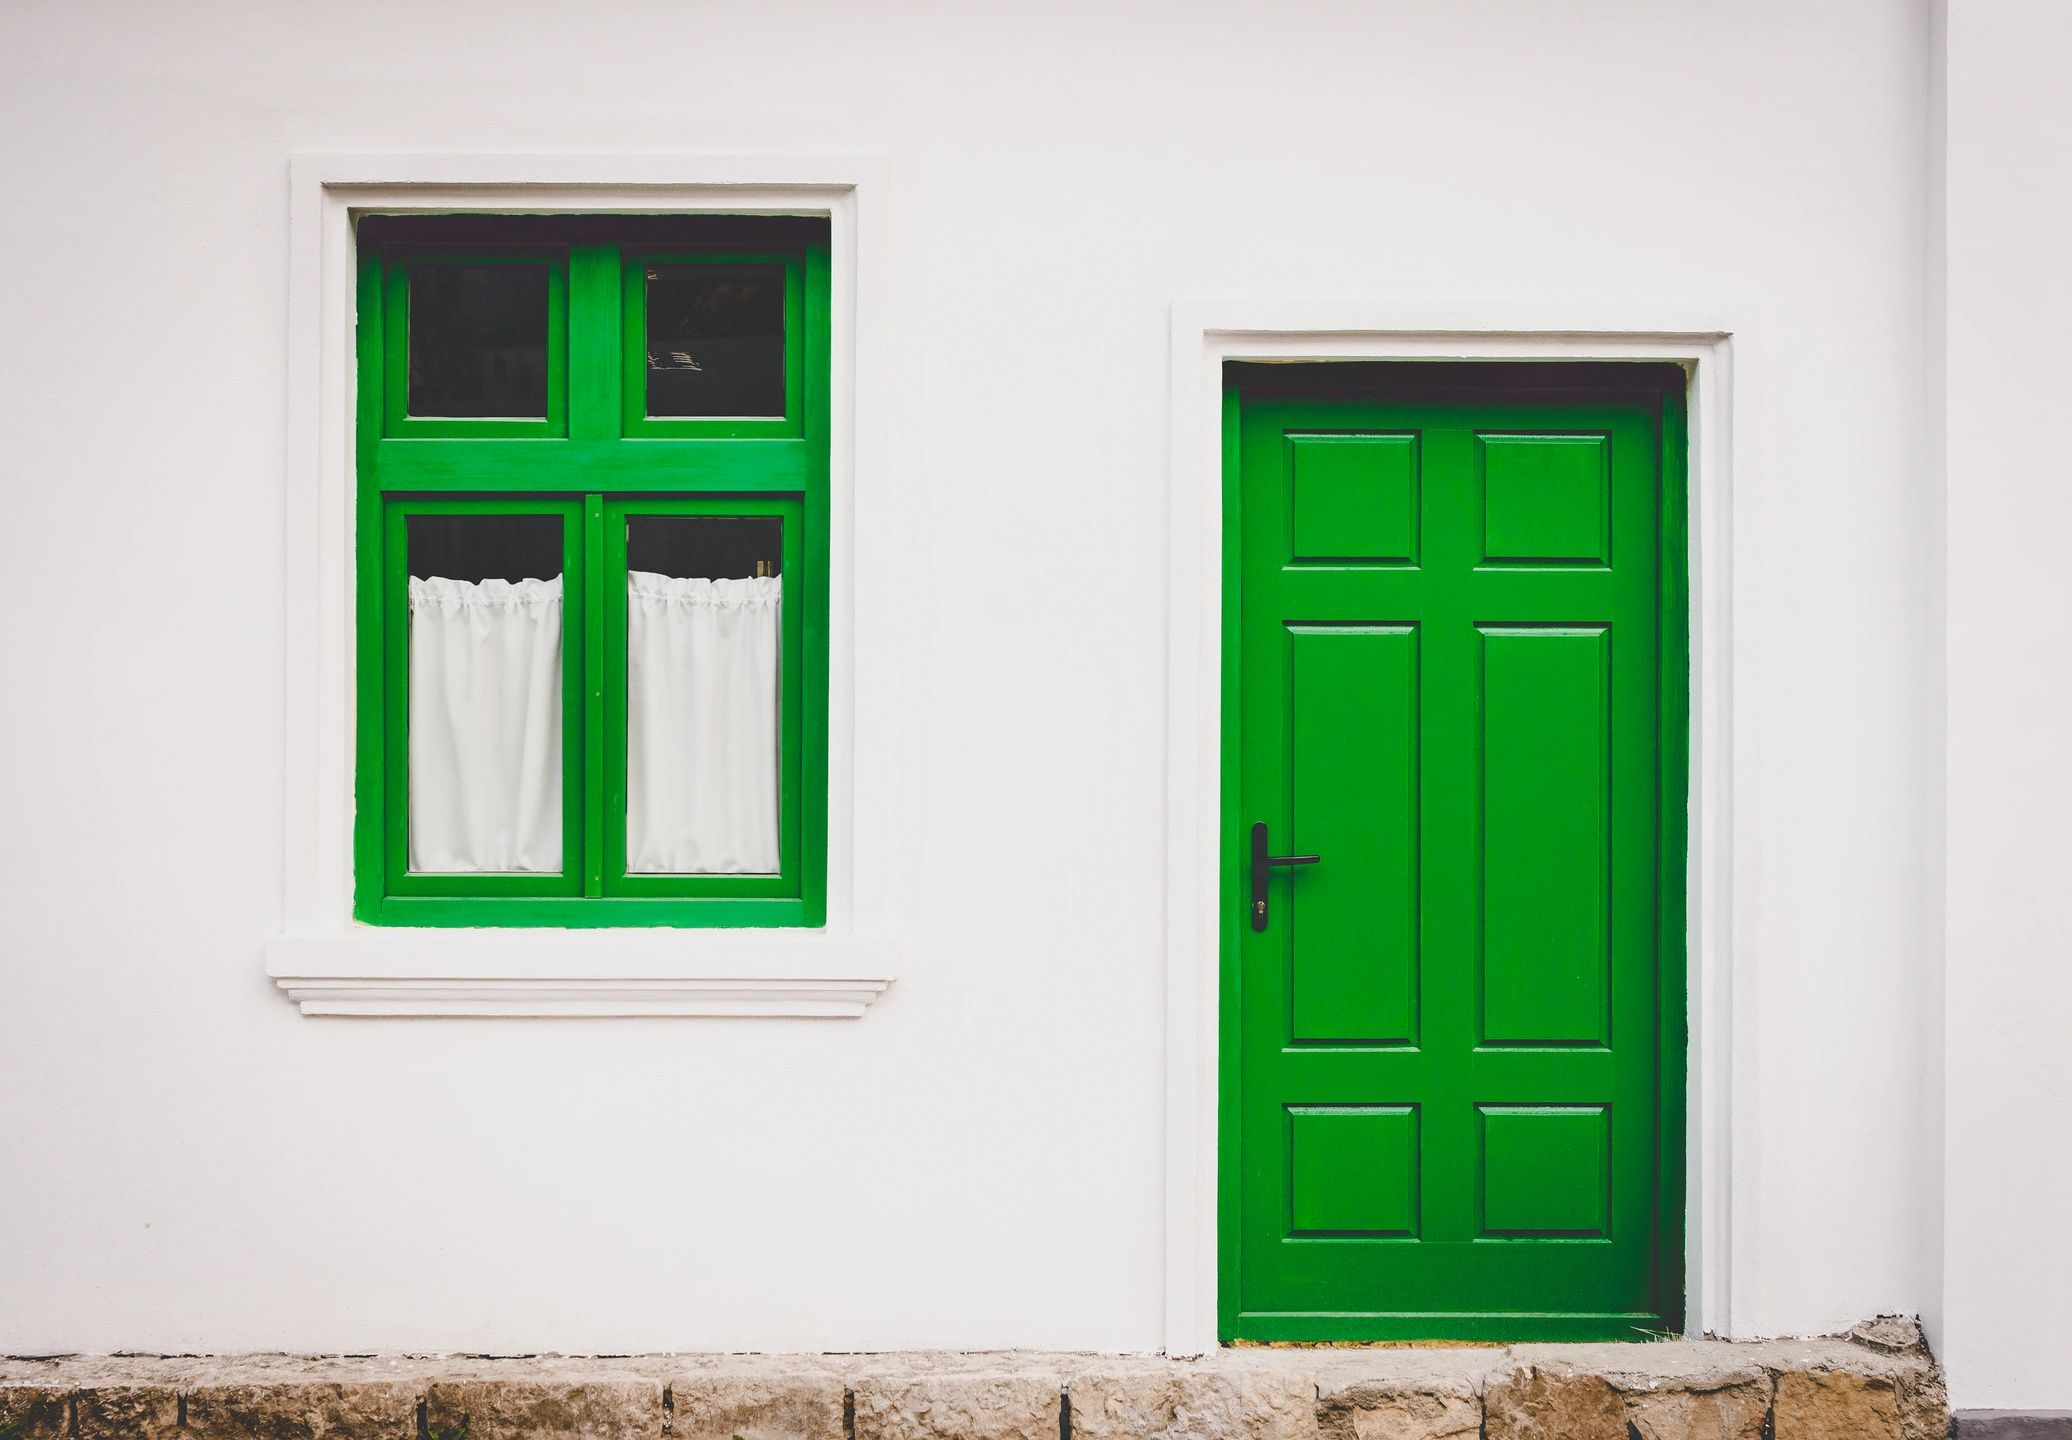 Green door and window - New paint makes real estate more appealing